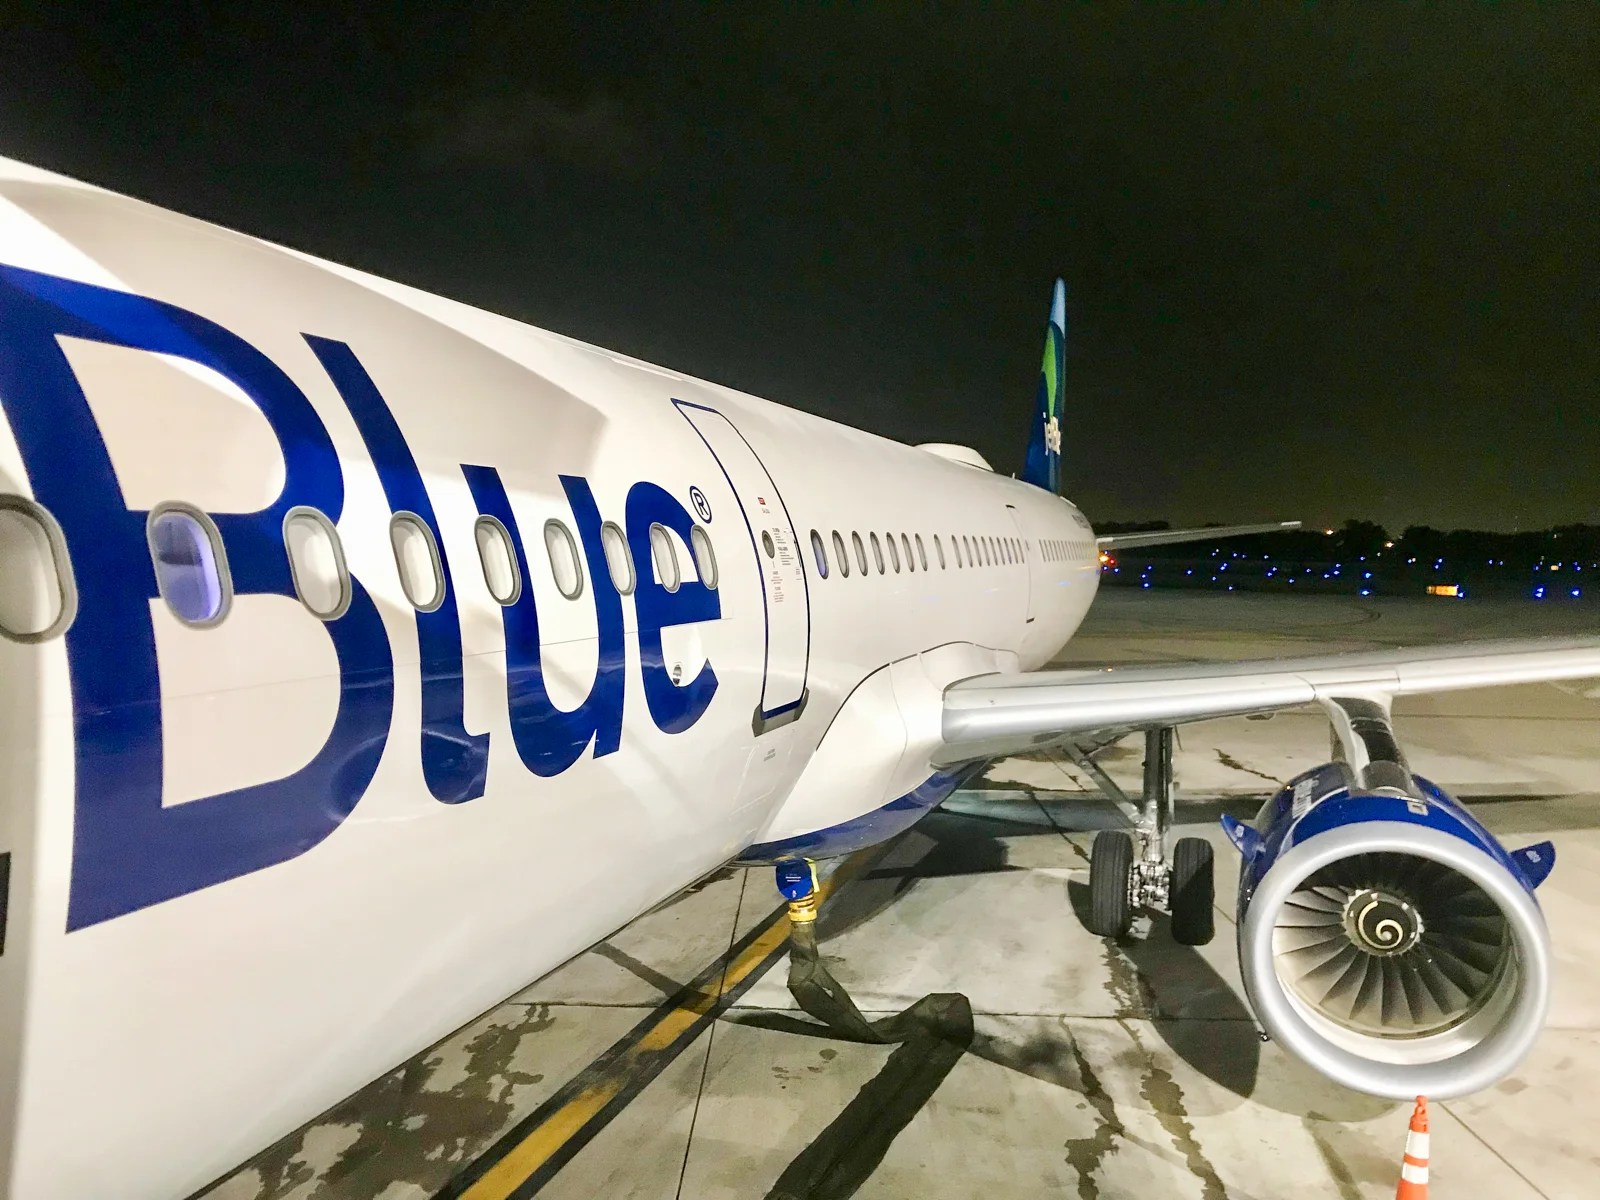 JetBlue flash sale: Flights starting at 2,700 points or $49 one-way